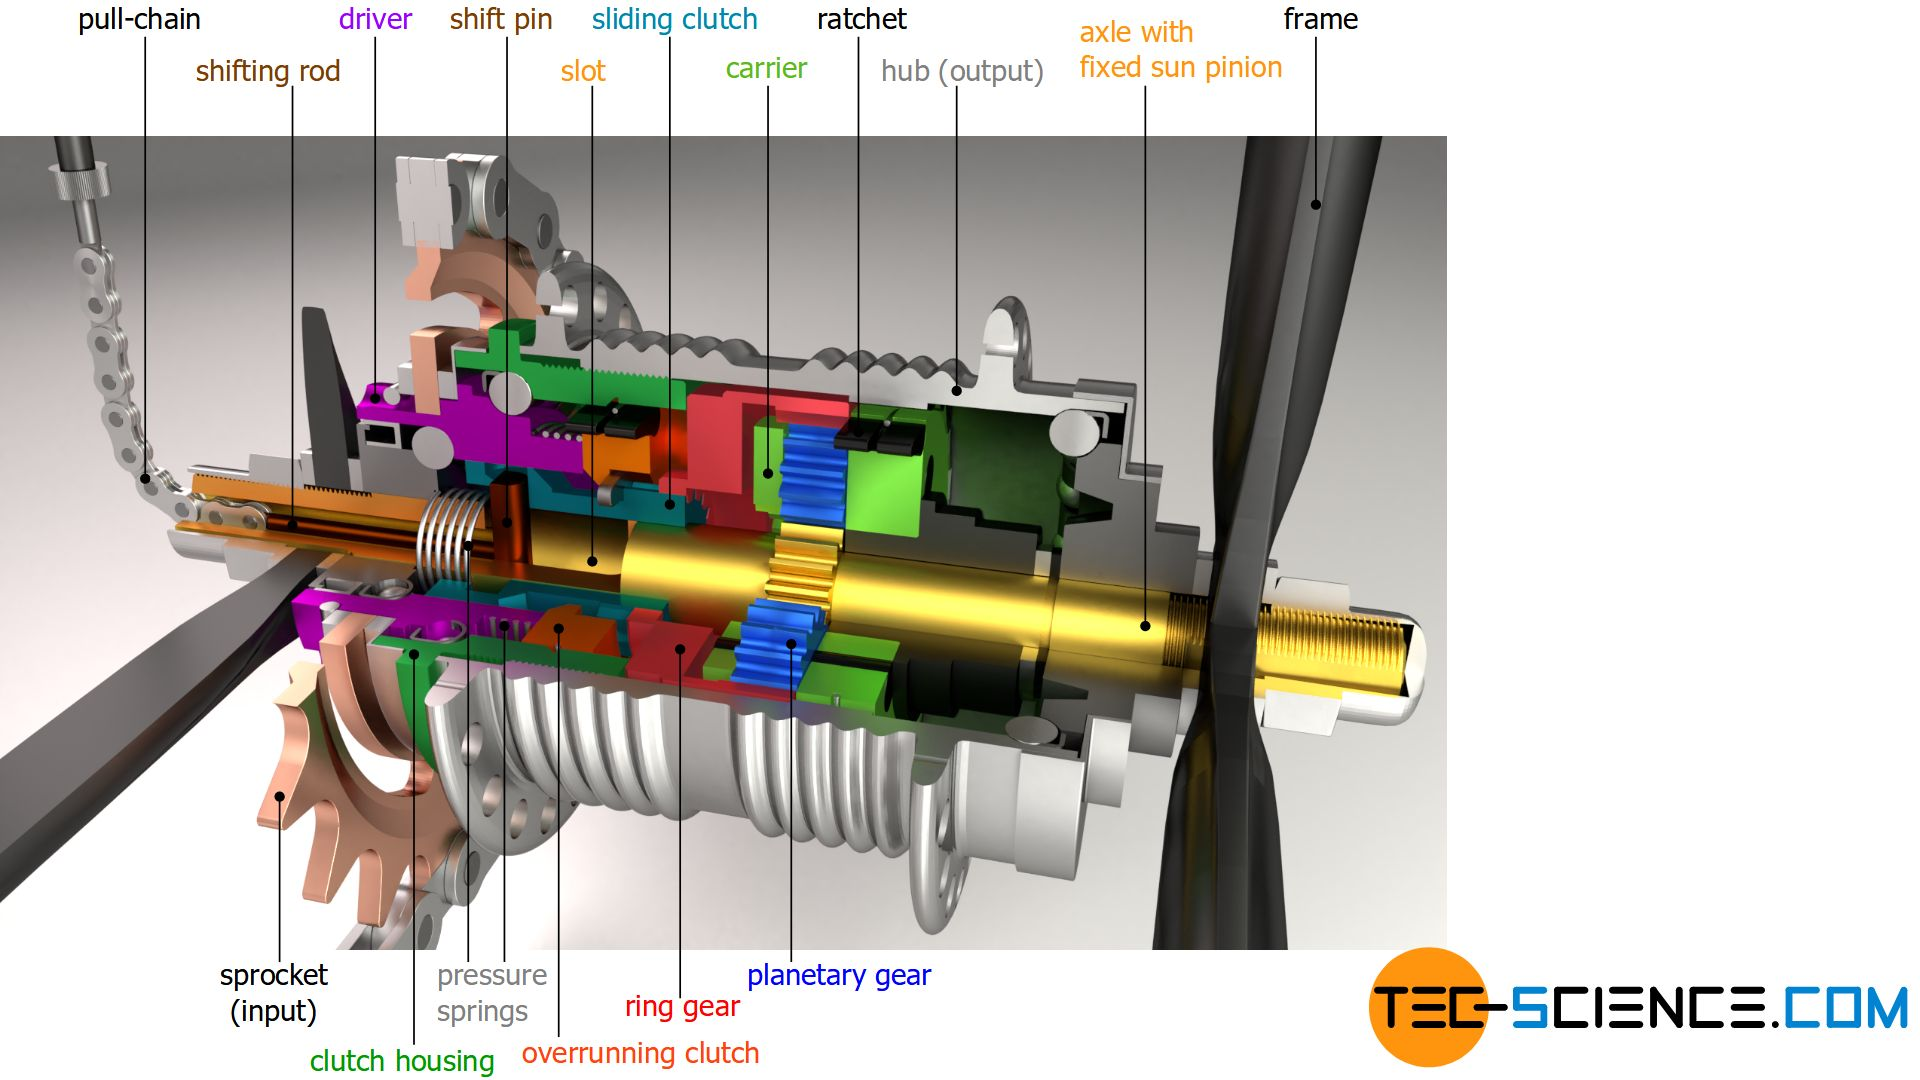 Assembly of the components of a three-speed internal gear hub